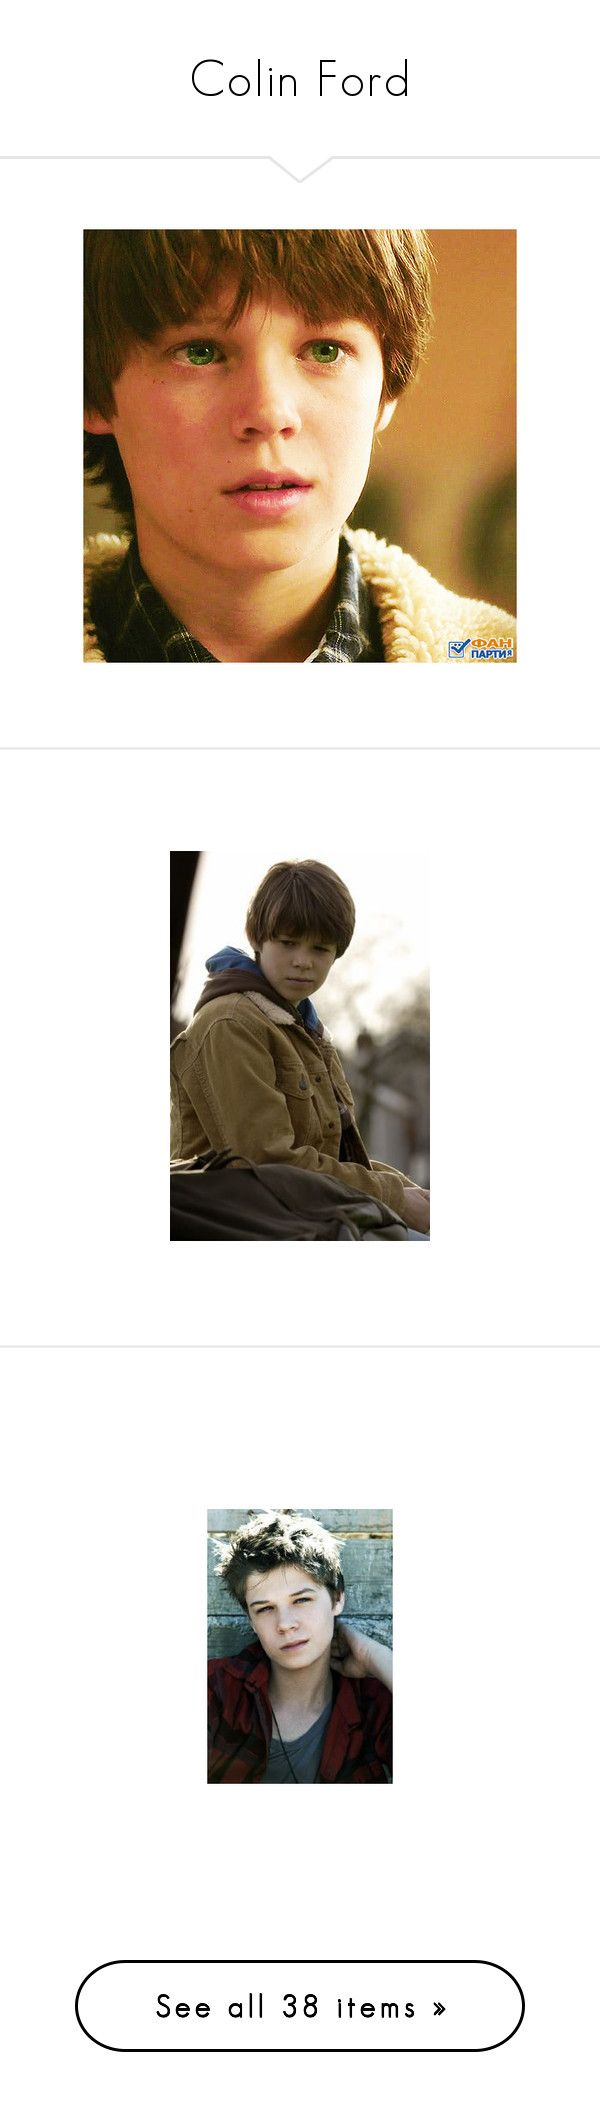 """""""Colin Ford"""" by ltspork ❤ liked on Polyvore featuring supernatural, people, colin ford, home, home decor, men, boy, pictures, male and guys"""